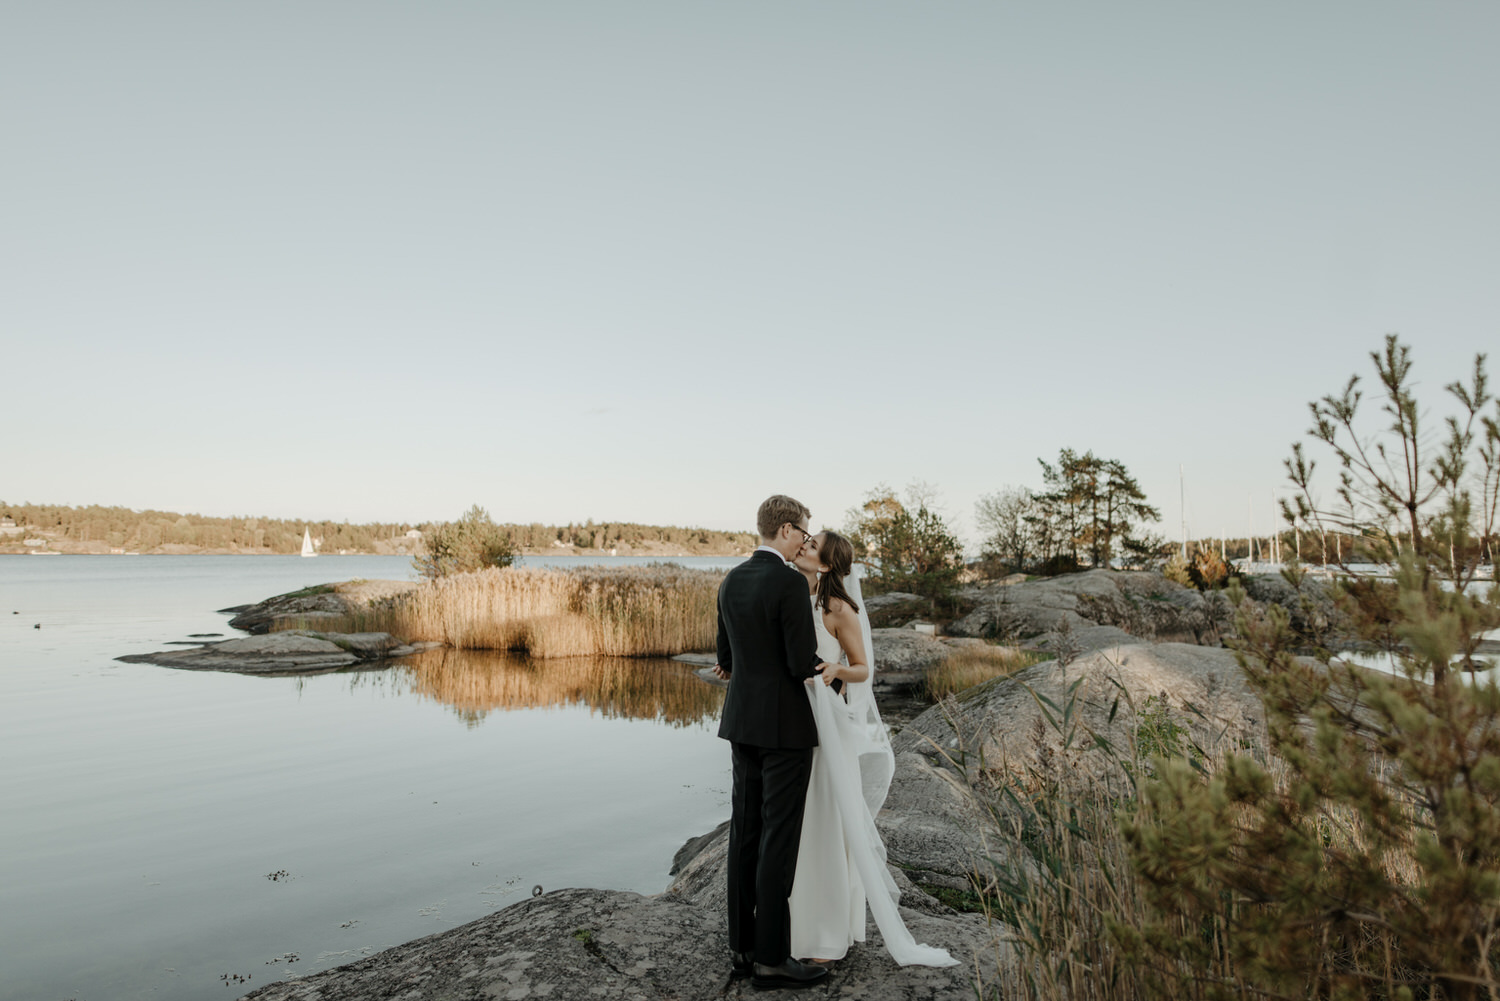 Archipelago wedding portraits